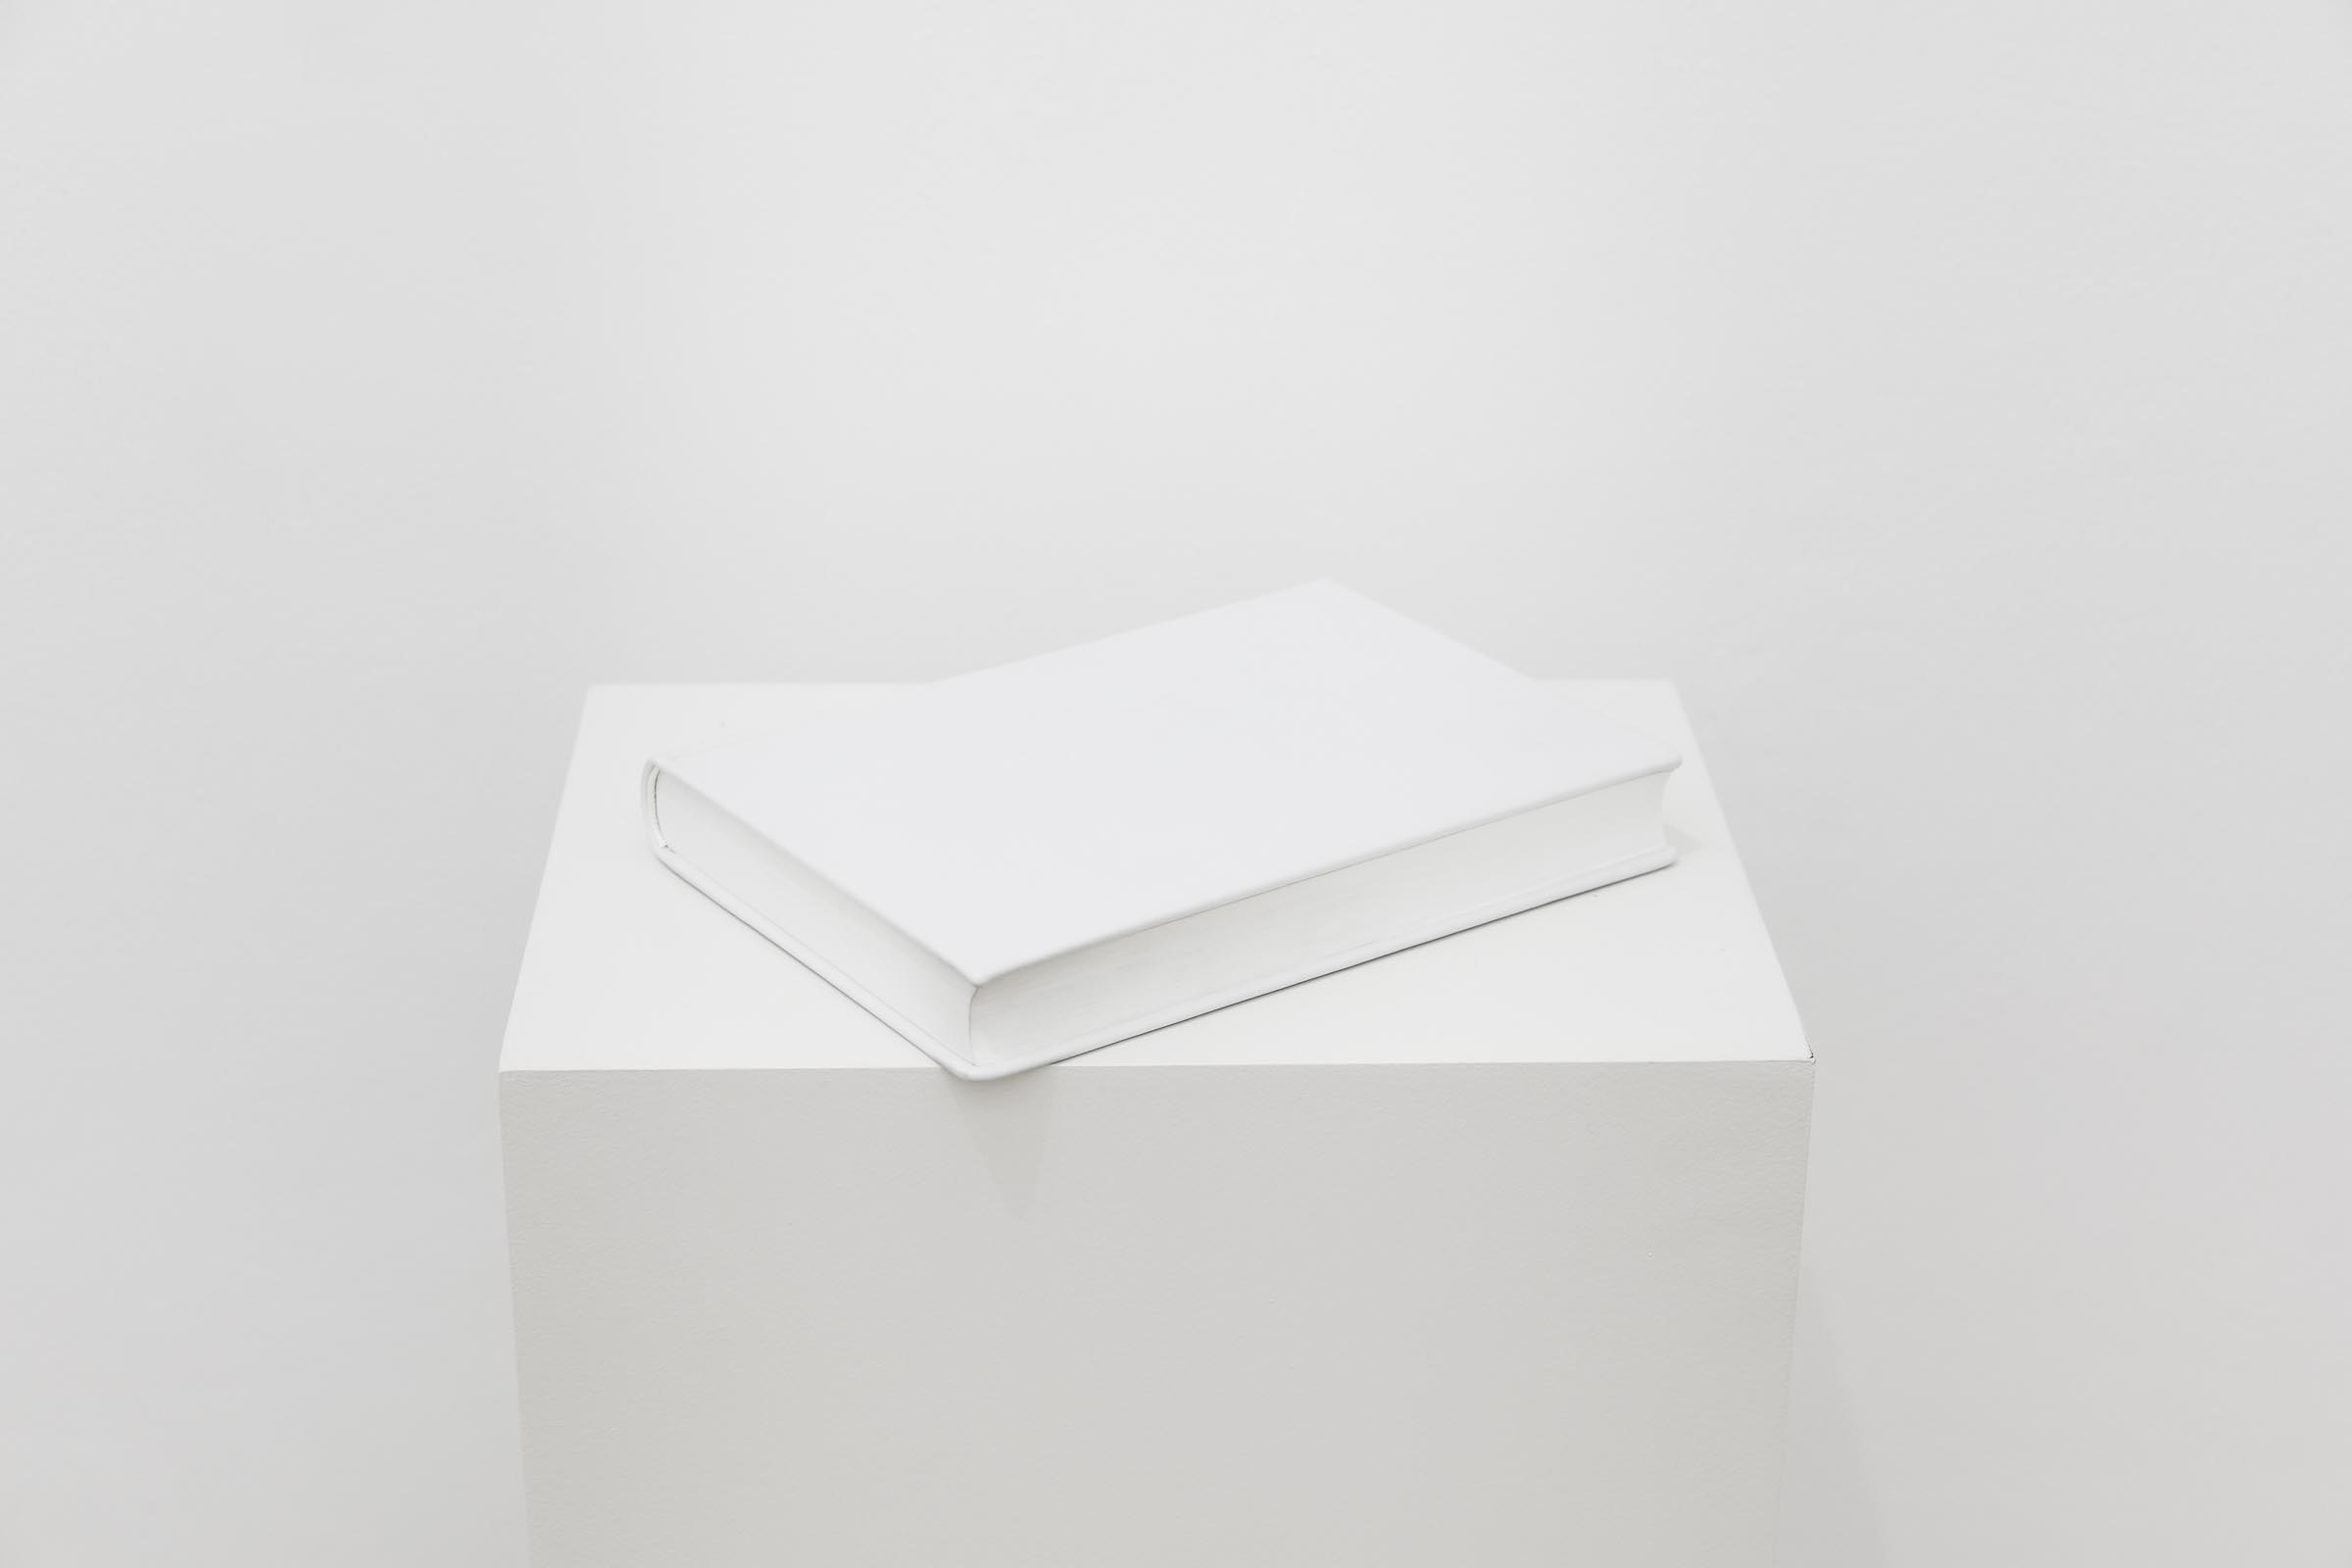 Daniel Gustav Cramer, Earth Impact Database, 2015, Book, 22,5 x 16,5 x 3 cm